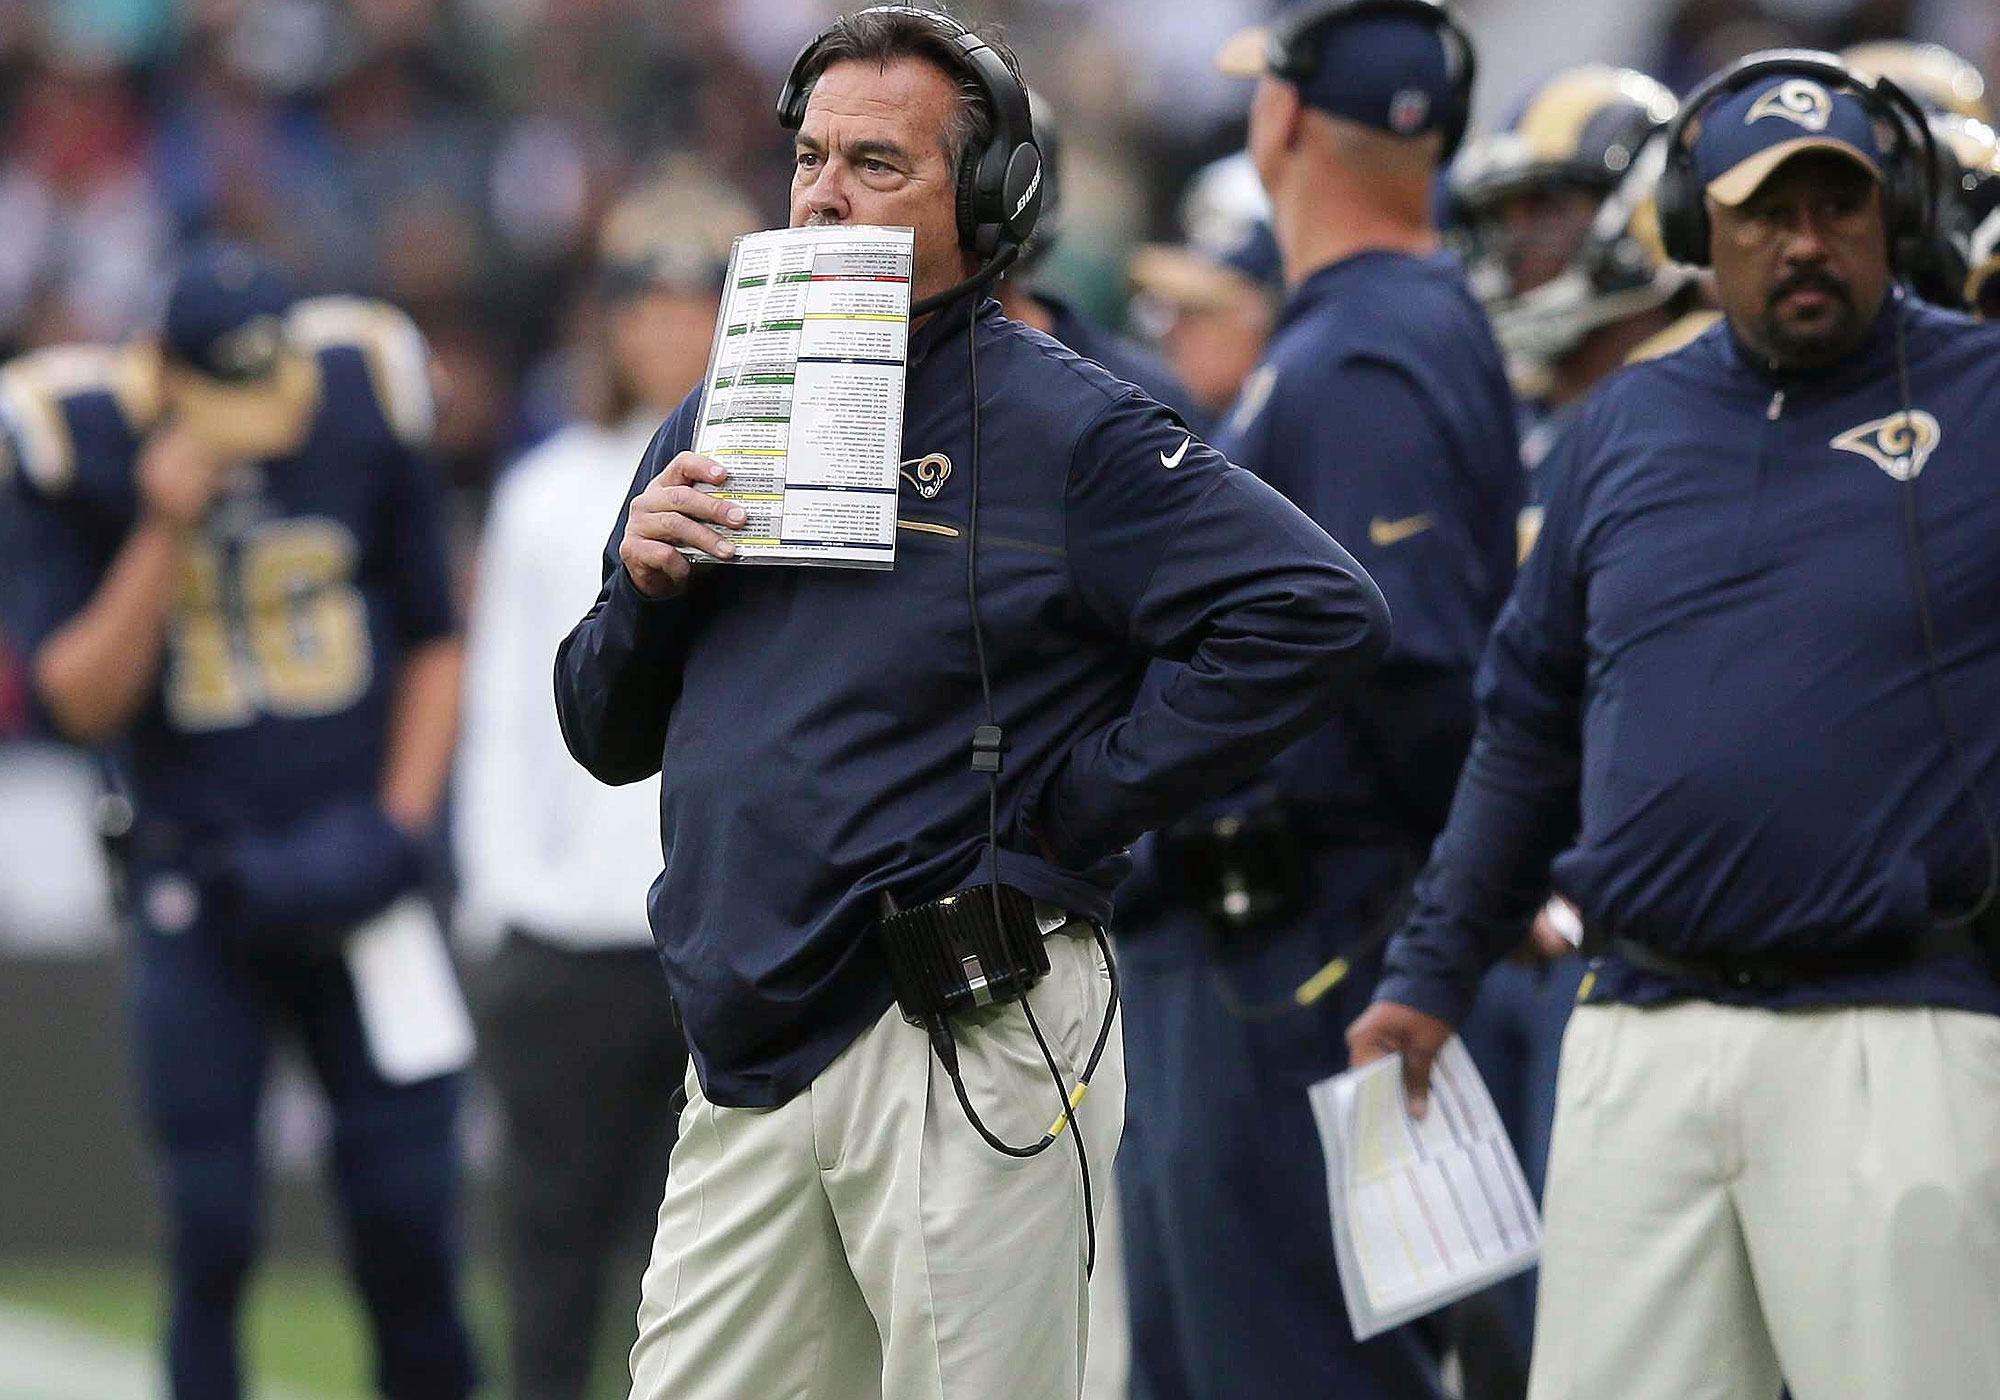 """As soon as Jeff Fisher said it on Hard Knocks, we knew that it would haunt him this season: """"I'm not [expletive] going 7–9, or 8–8 ,or 9–7, O.K.? Or 10–6, for that matter."""" Well, the Rams are 3–4 and on pace for Fisher's 16th season at 8–8 or worse. He hasn't finished above .500 since 2008 and he could extend that streak another year. There was talk at the start of the season that contract extensions for Fisher and GM Les Snead were imminent, which remains baffling three consecutive losses later. L.A. is in the bottom-third of the league in most important offensive categories, and its defense, while above league-average, has a collection of talent that should be even better. Will Fisher get fired? Probably not. He's the Houdini of NFL head coaches. But that doesn't mean his seat shouldn't be on fire after all this mediocrity."""